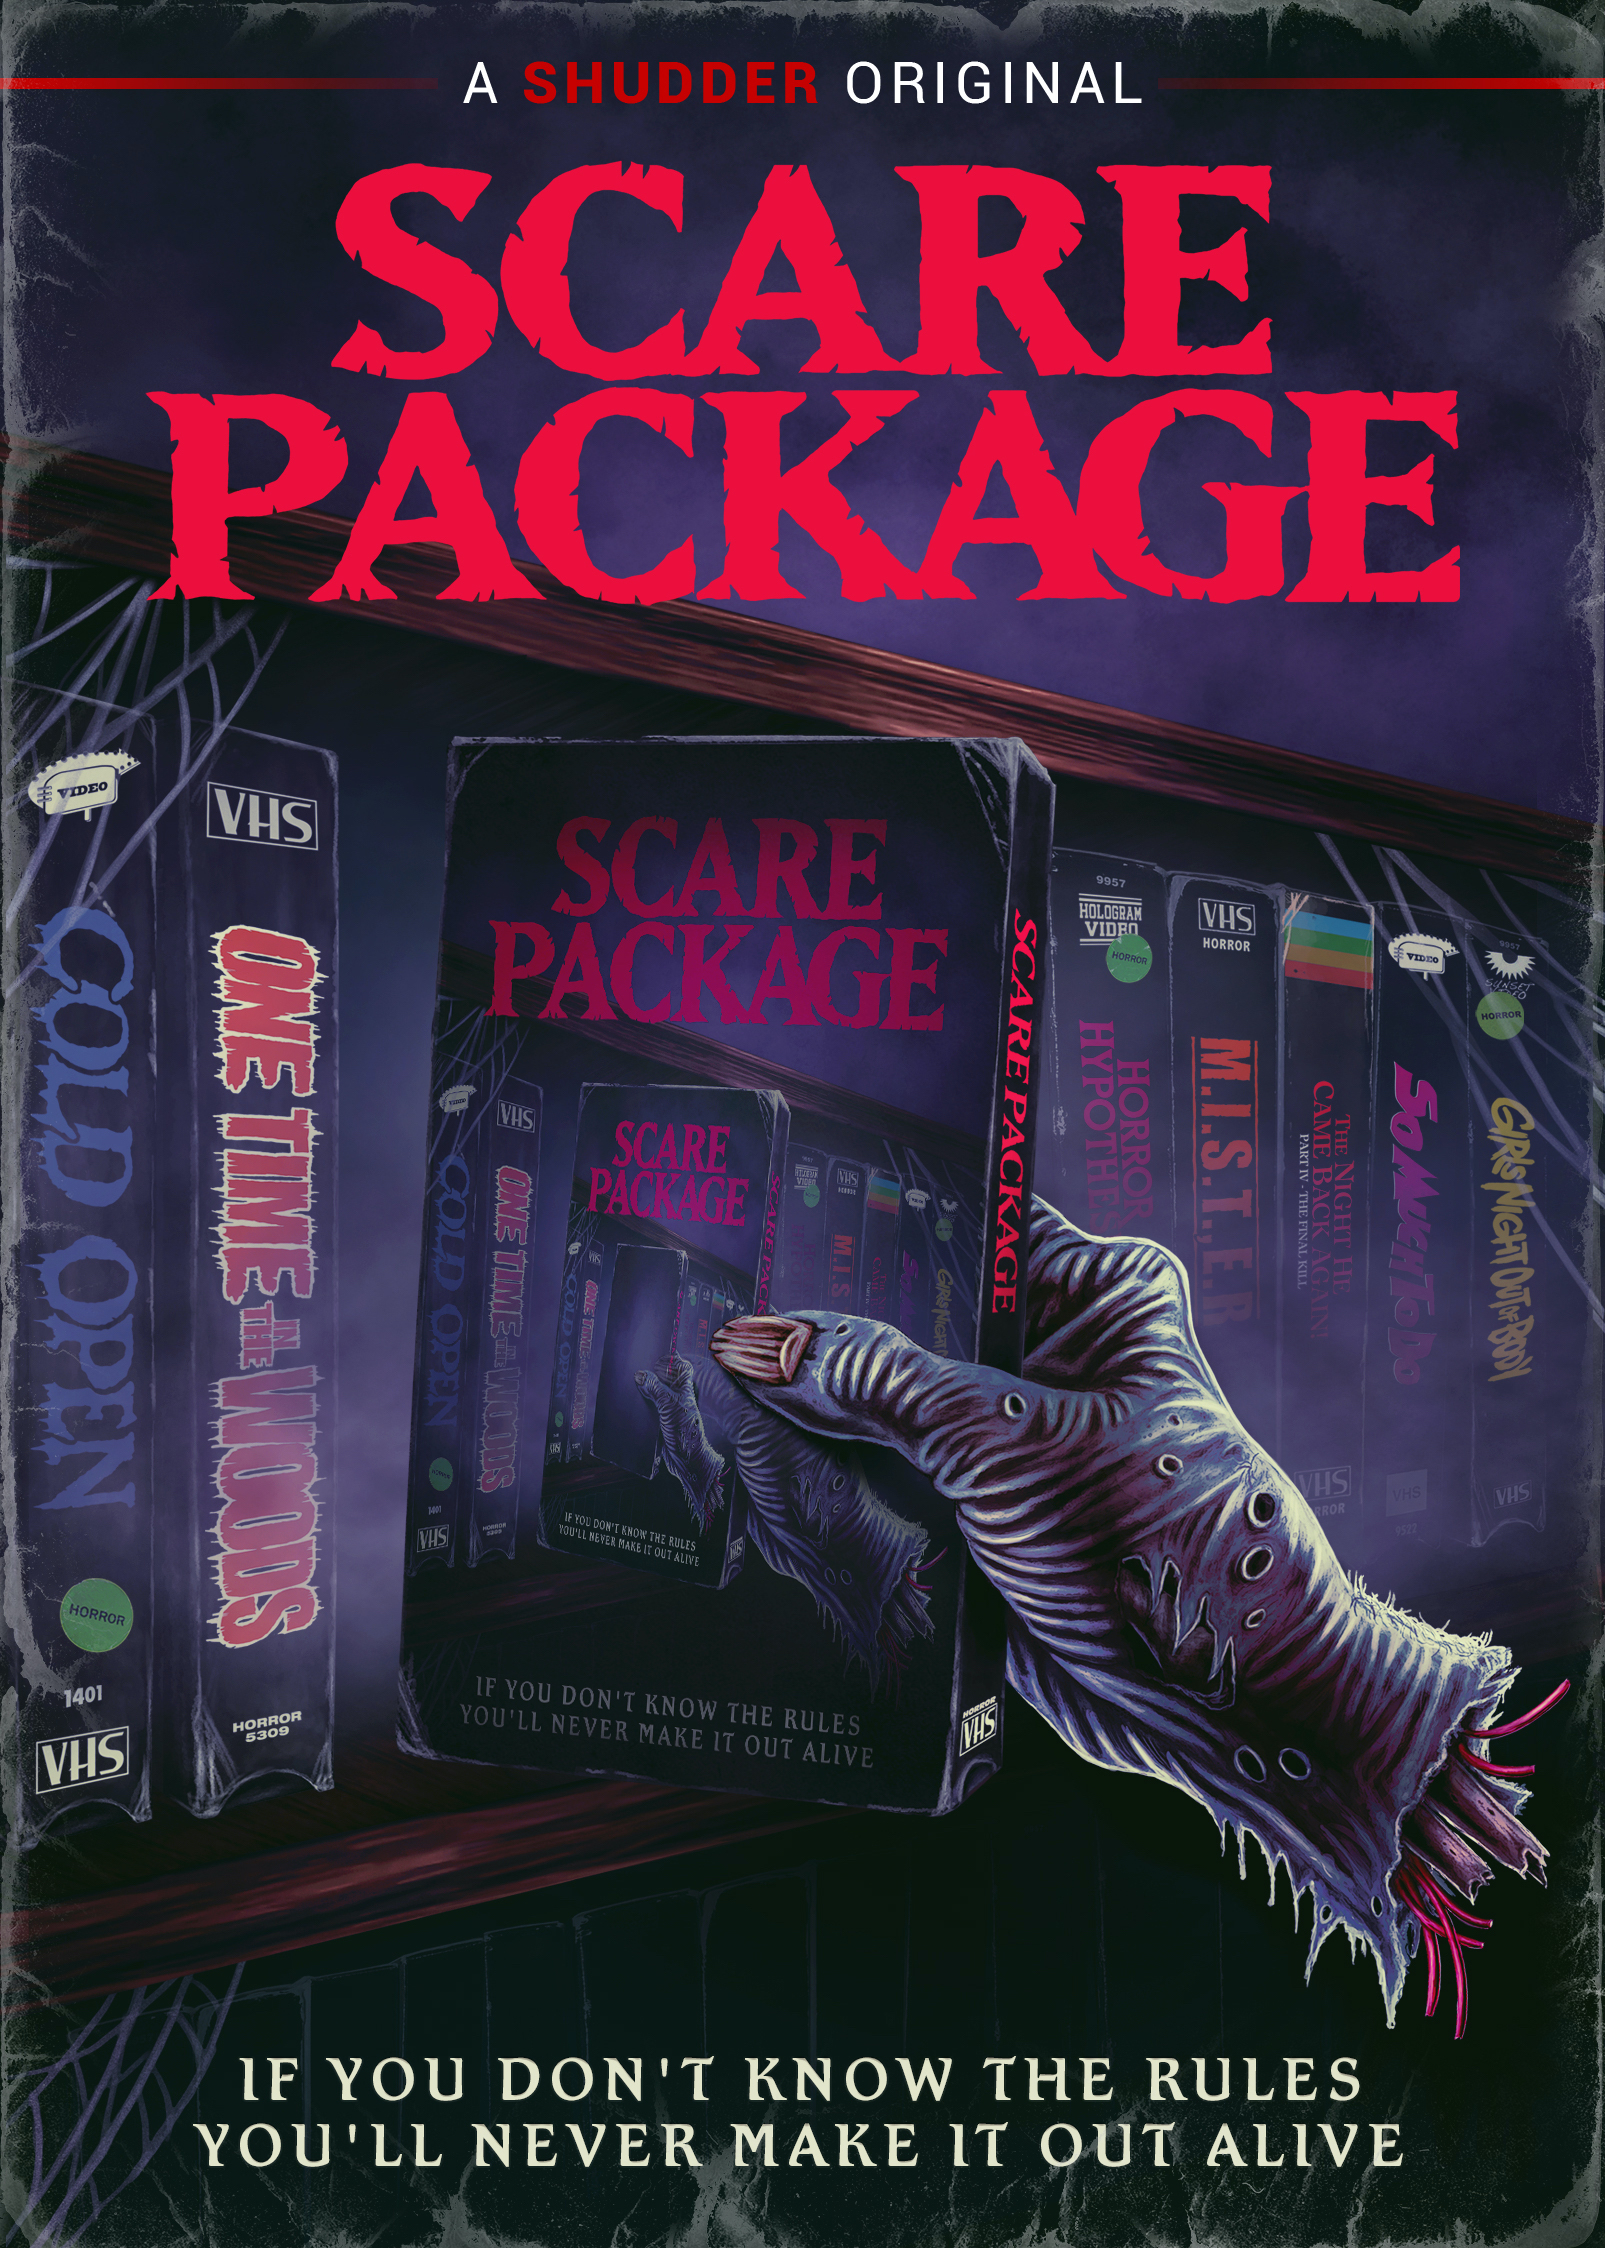 SCARE PACKAGE DVD Box Art